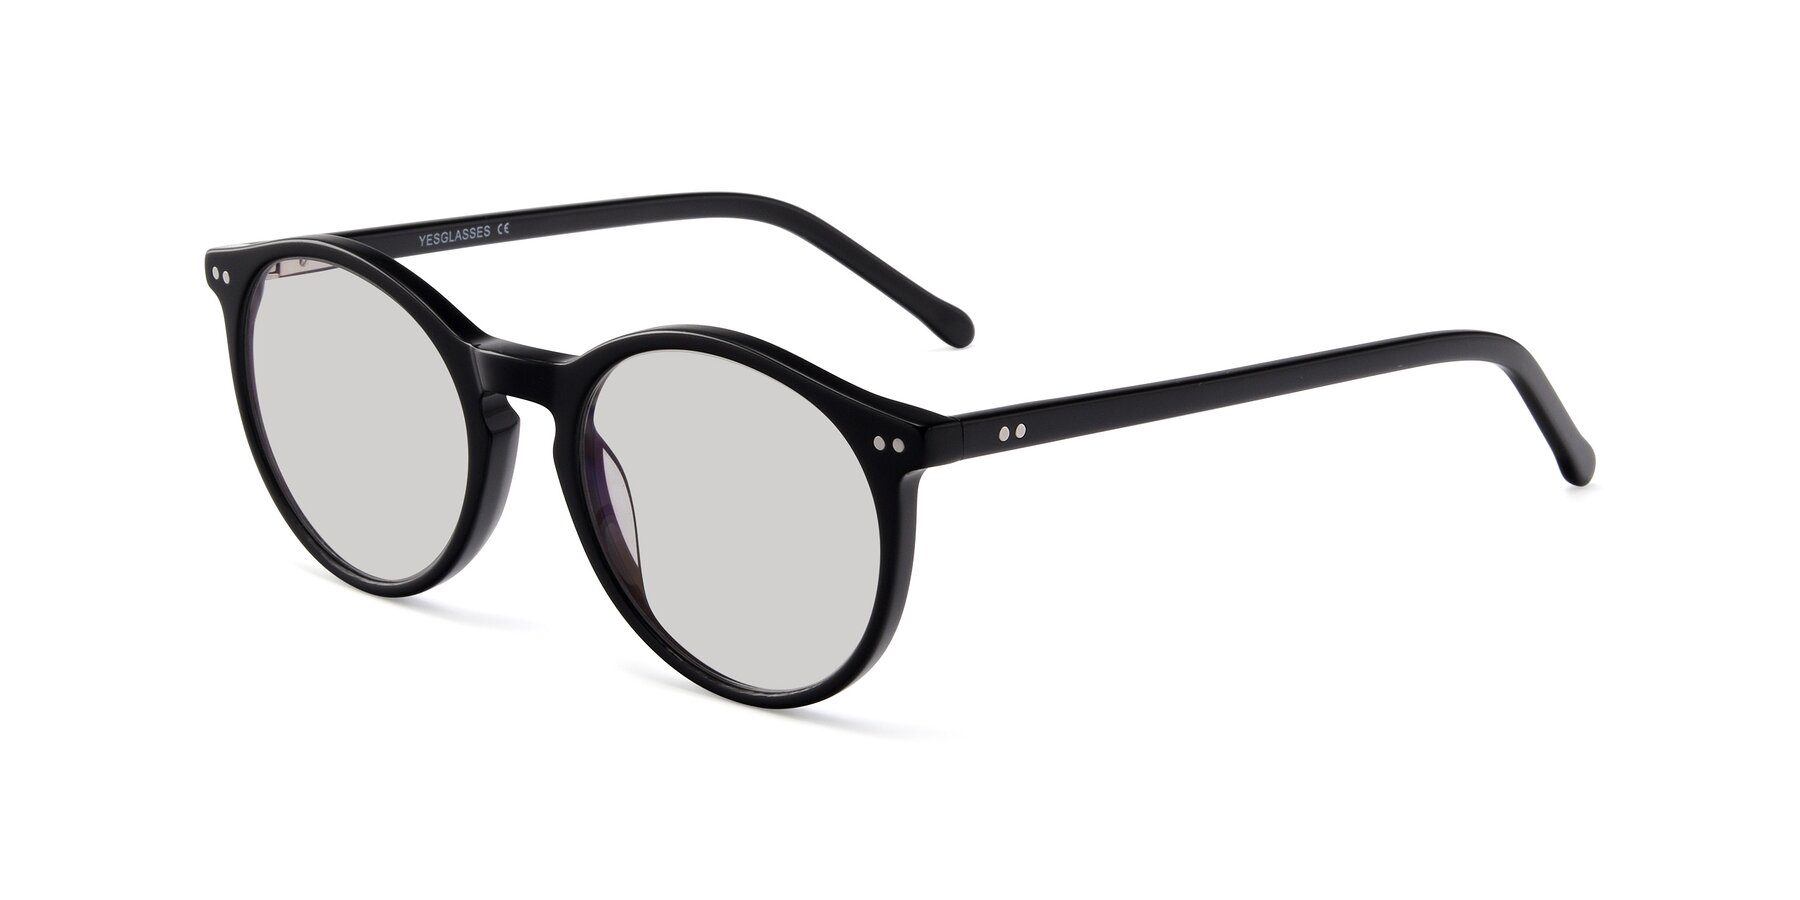 Angle of JS9026A in Black with Light Gray Tinted Lenses